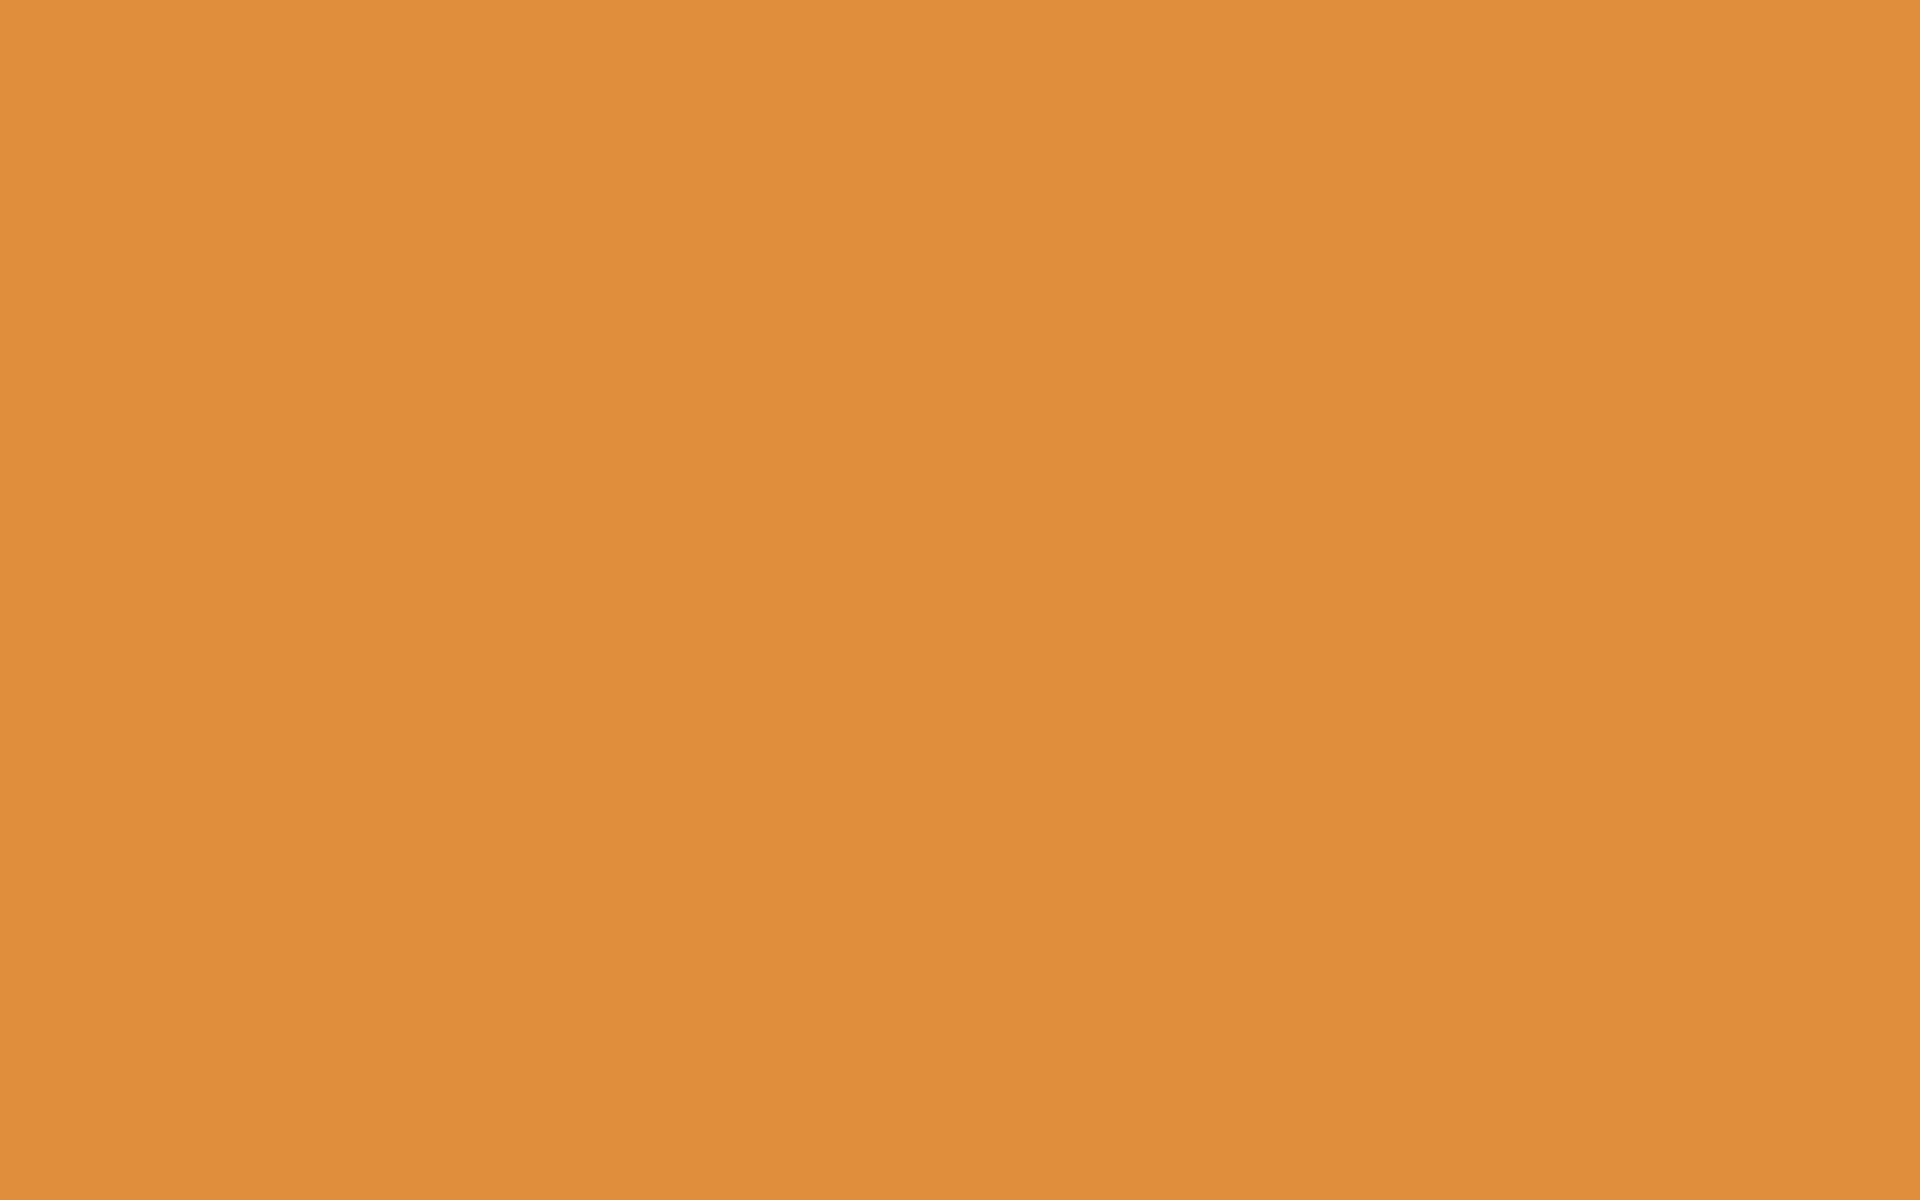 1920x1200 Tigers Eye Solid Color Background